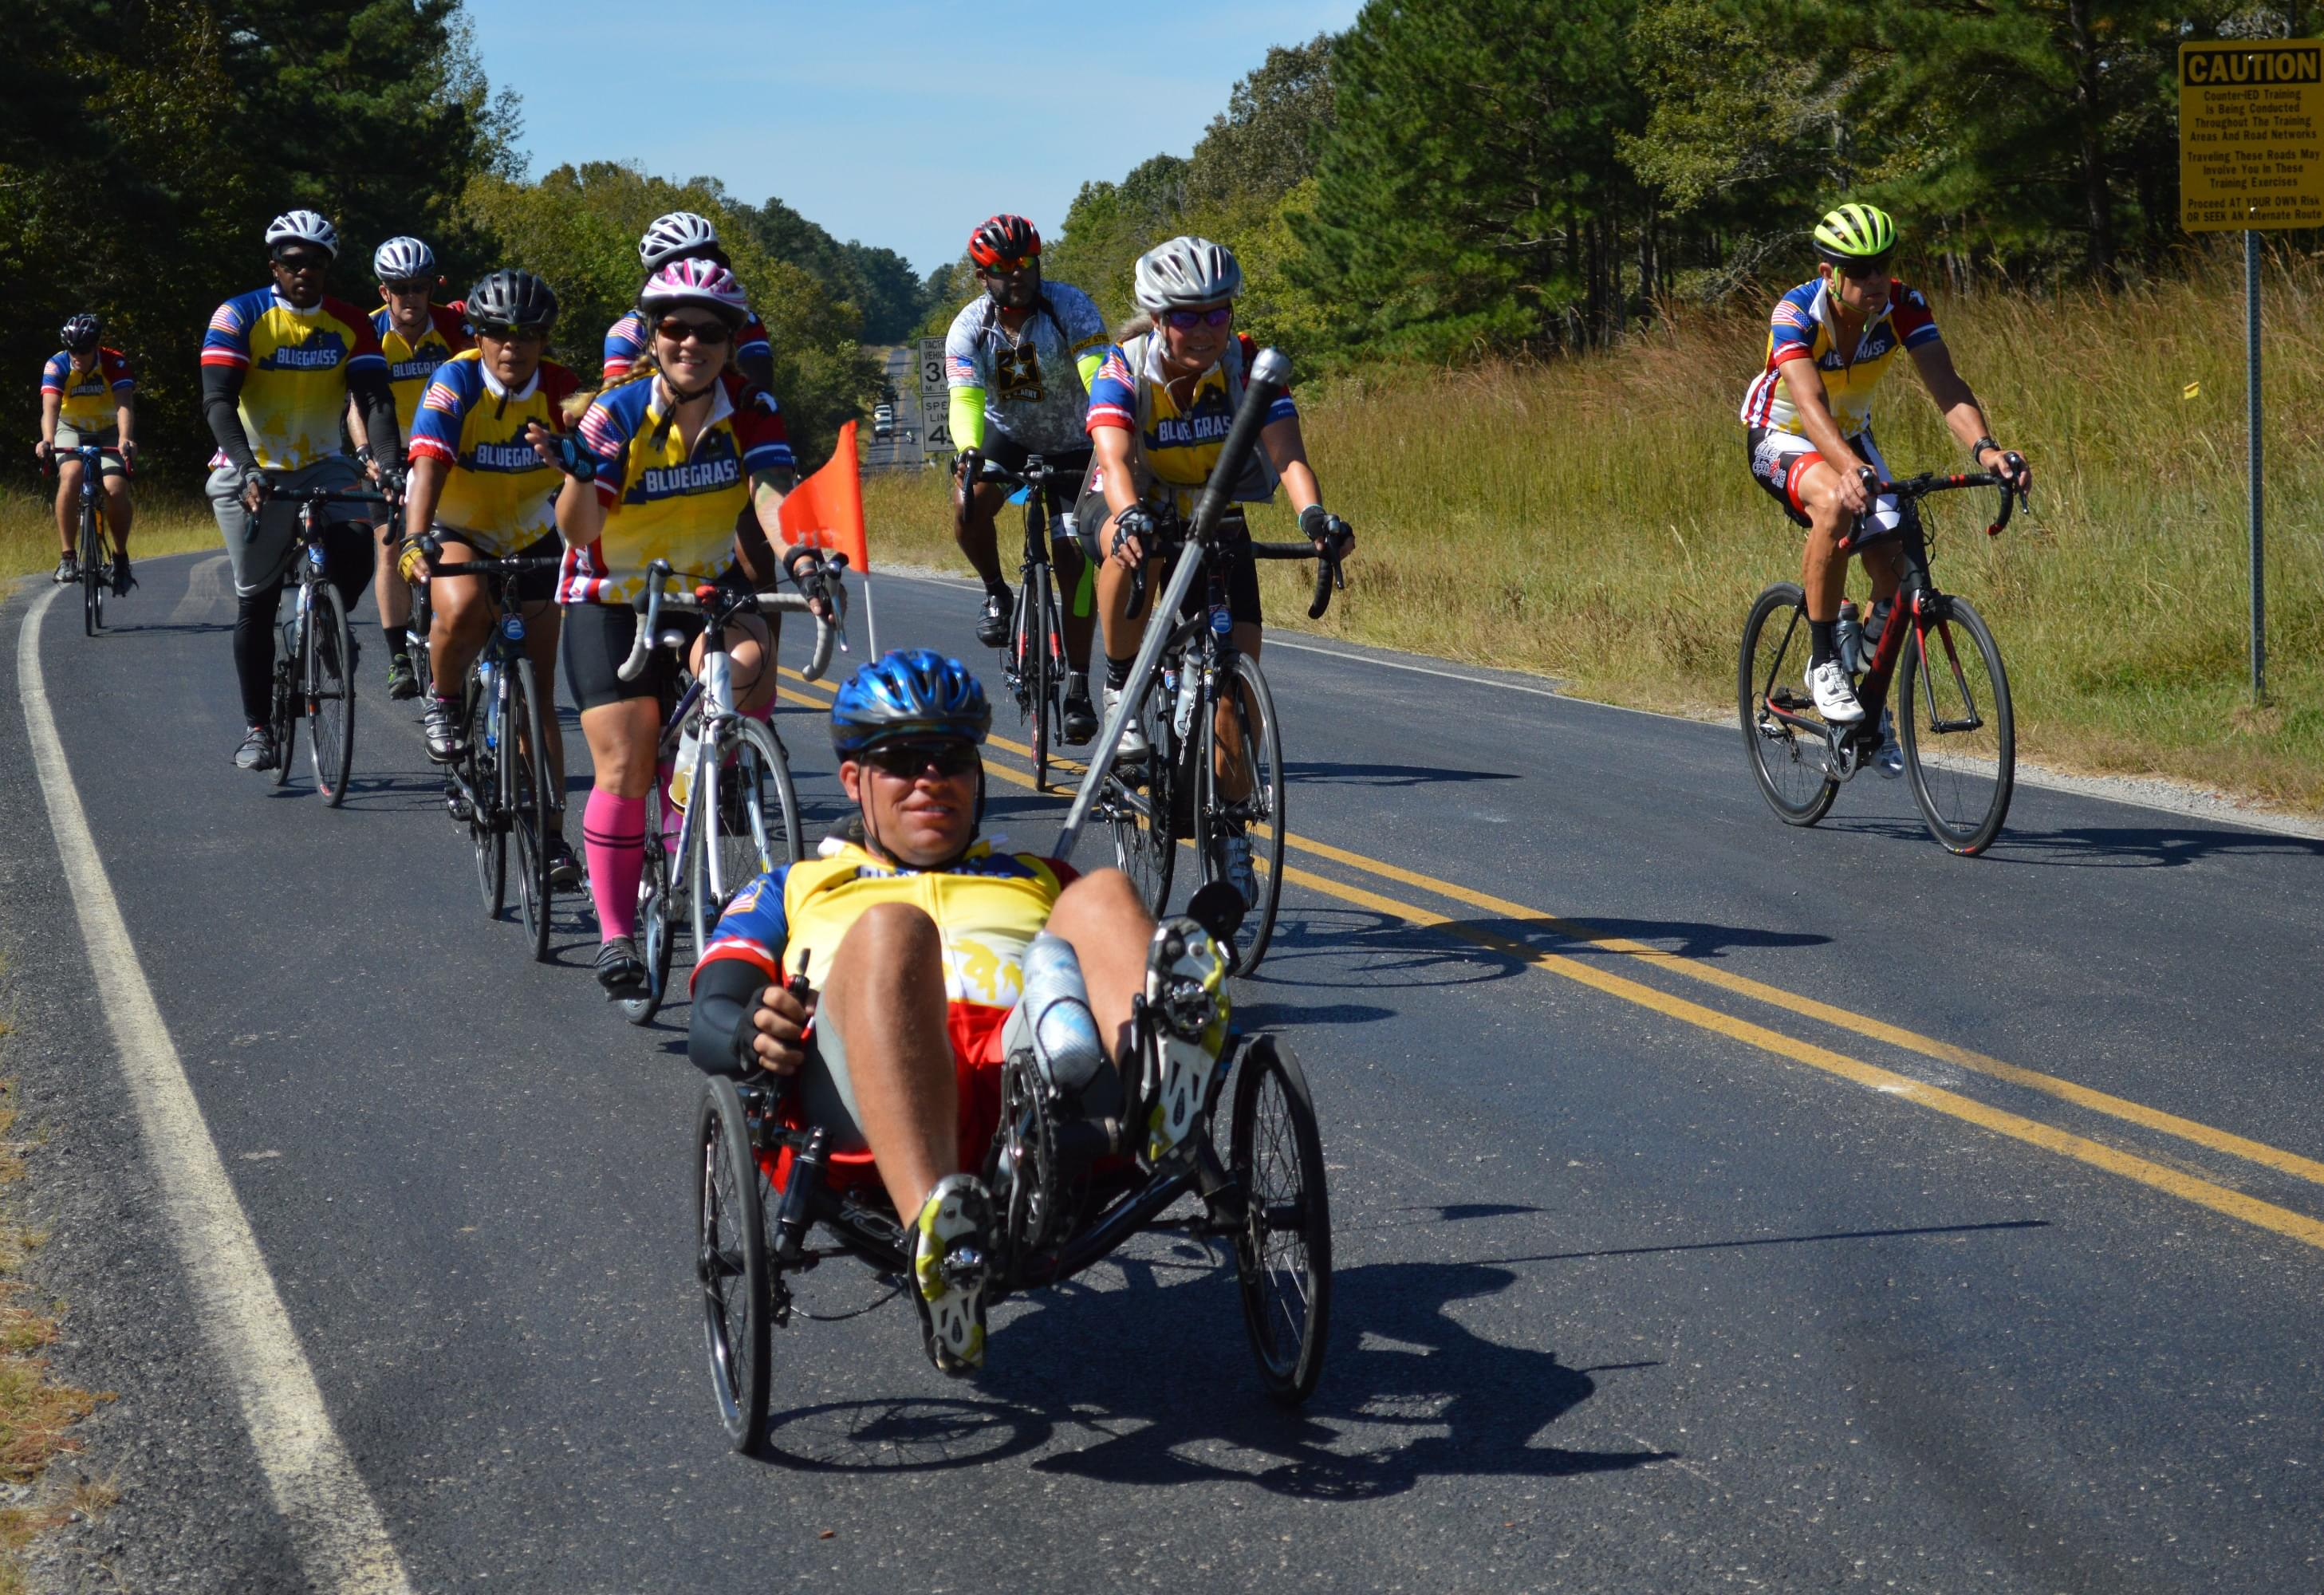 Wounded Soldiers Biking 101 Miles Later this Month